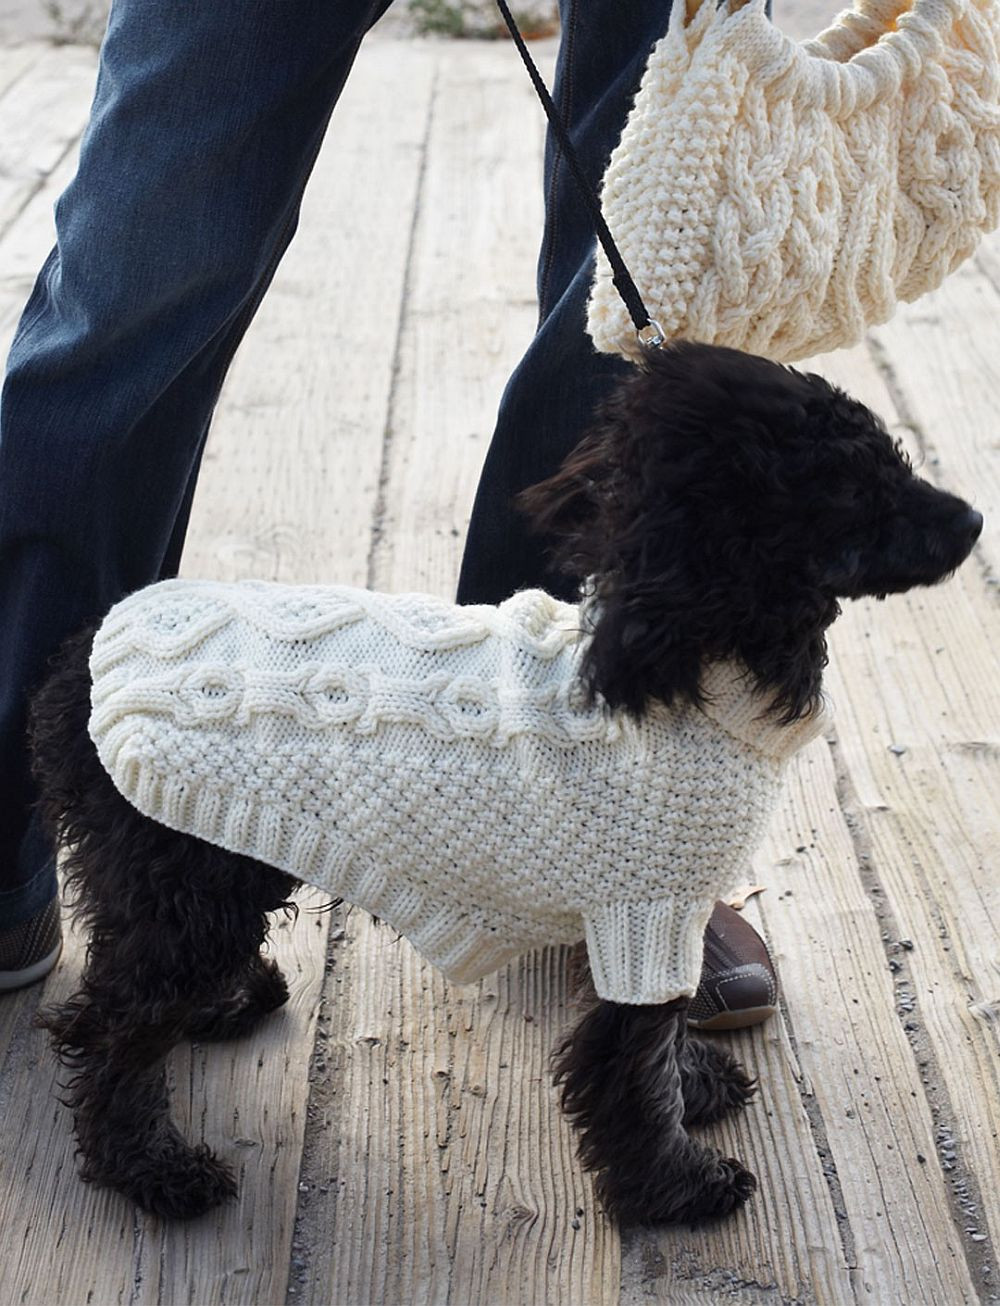 Dog Sweater Patterns Luxury Knitted Dog Sweaters to Keep Your Pooch Warm Of Unique 41 Photos Dog Sweater Patterns